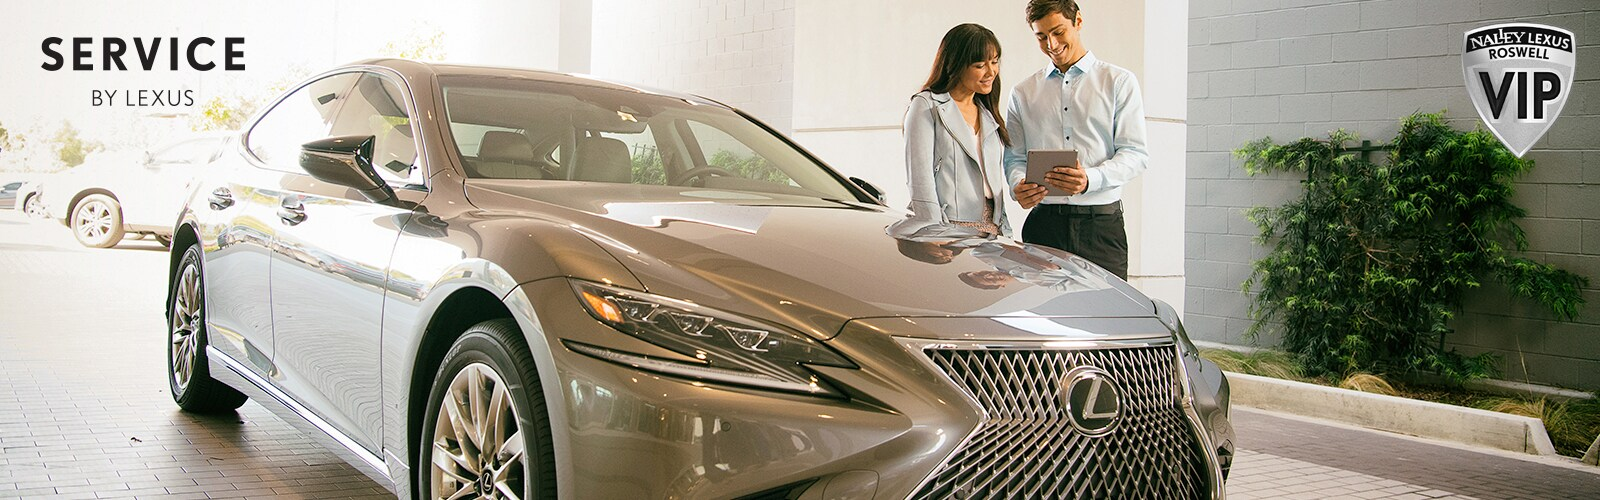 Lexus Service Amenities